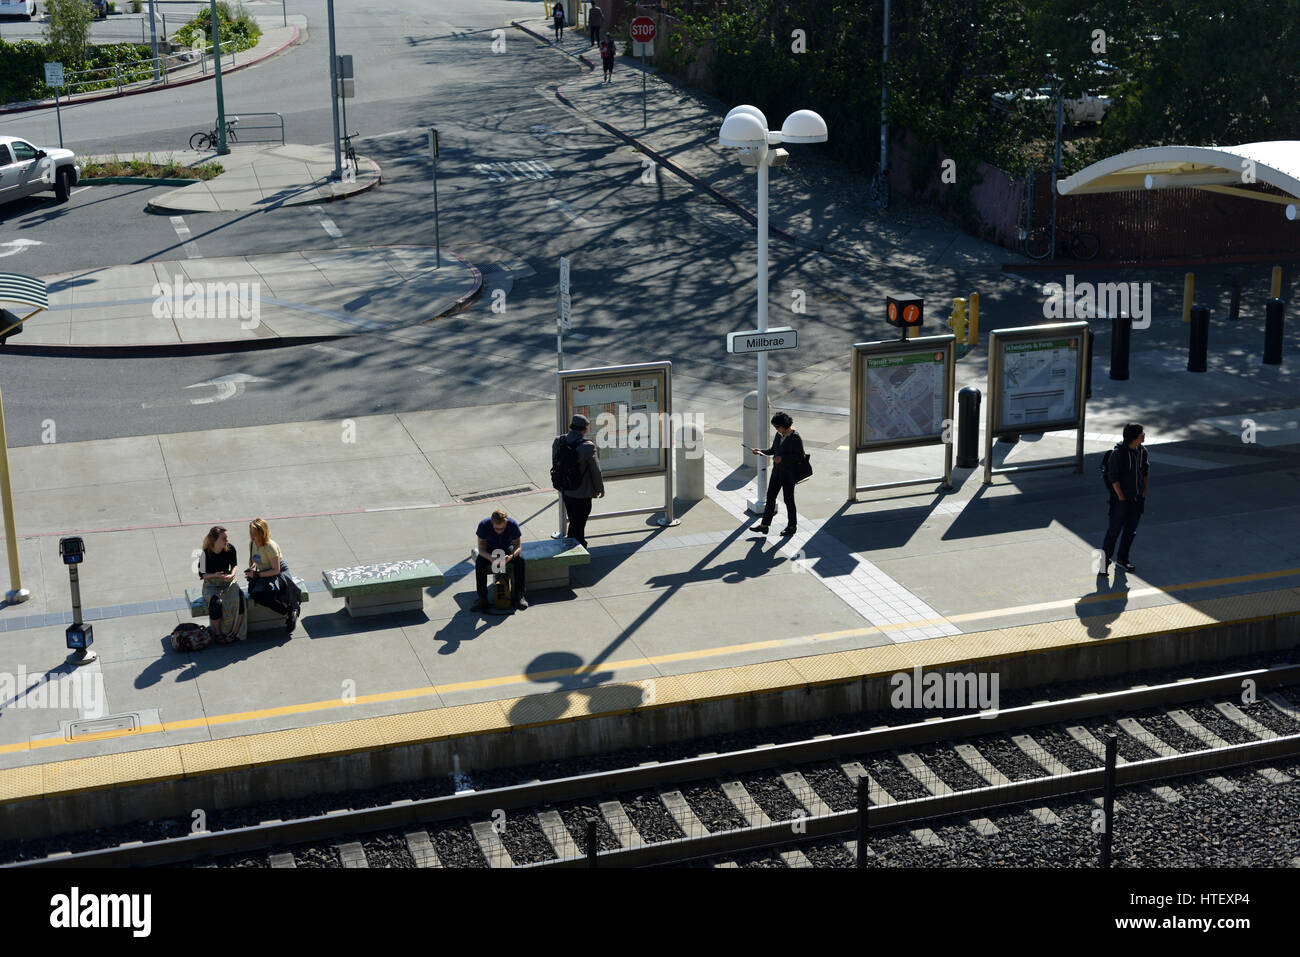 Caltrain and BART station at Millbrae, San Francisco, California, USA - Stock Image